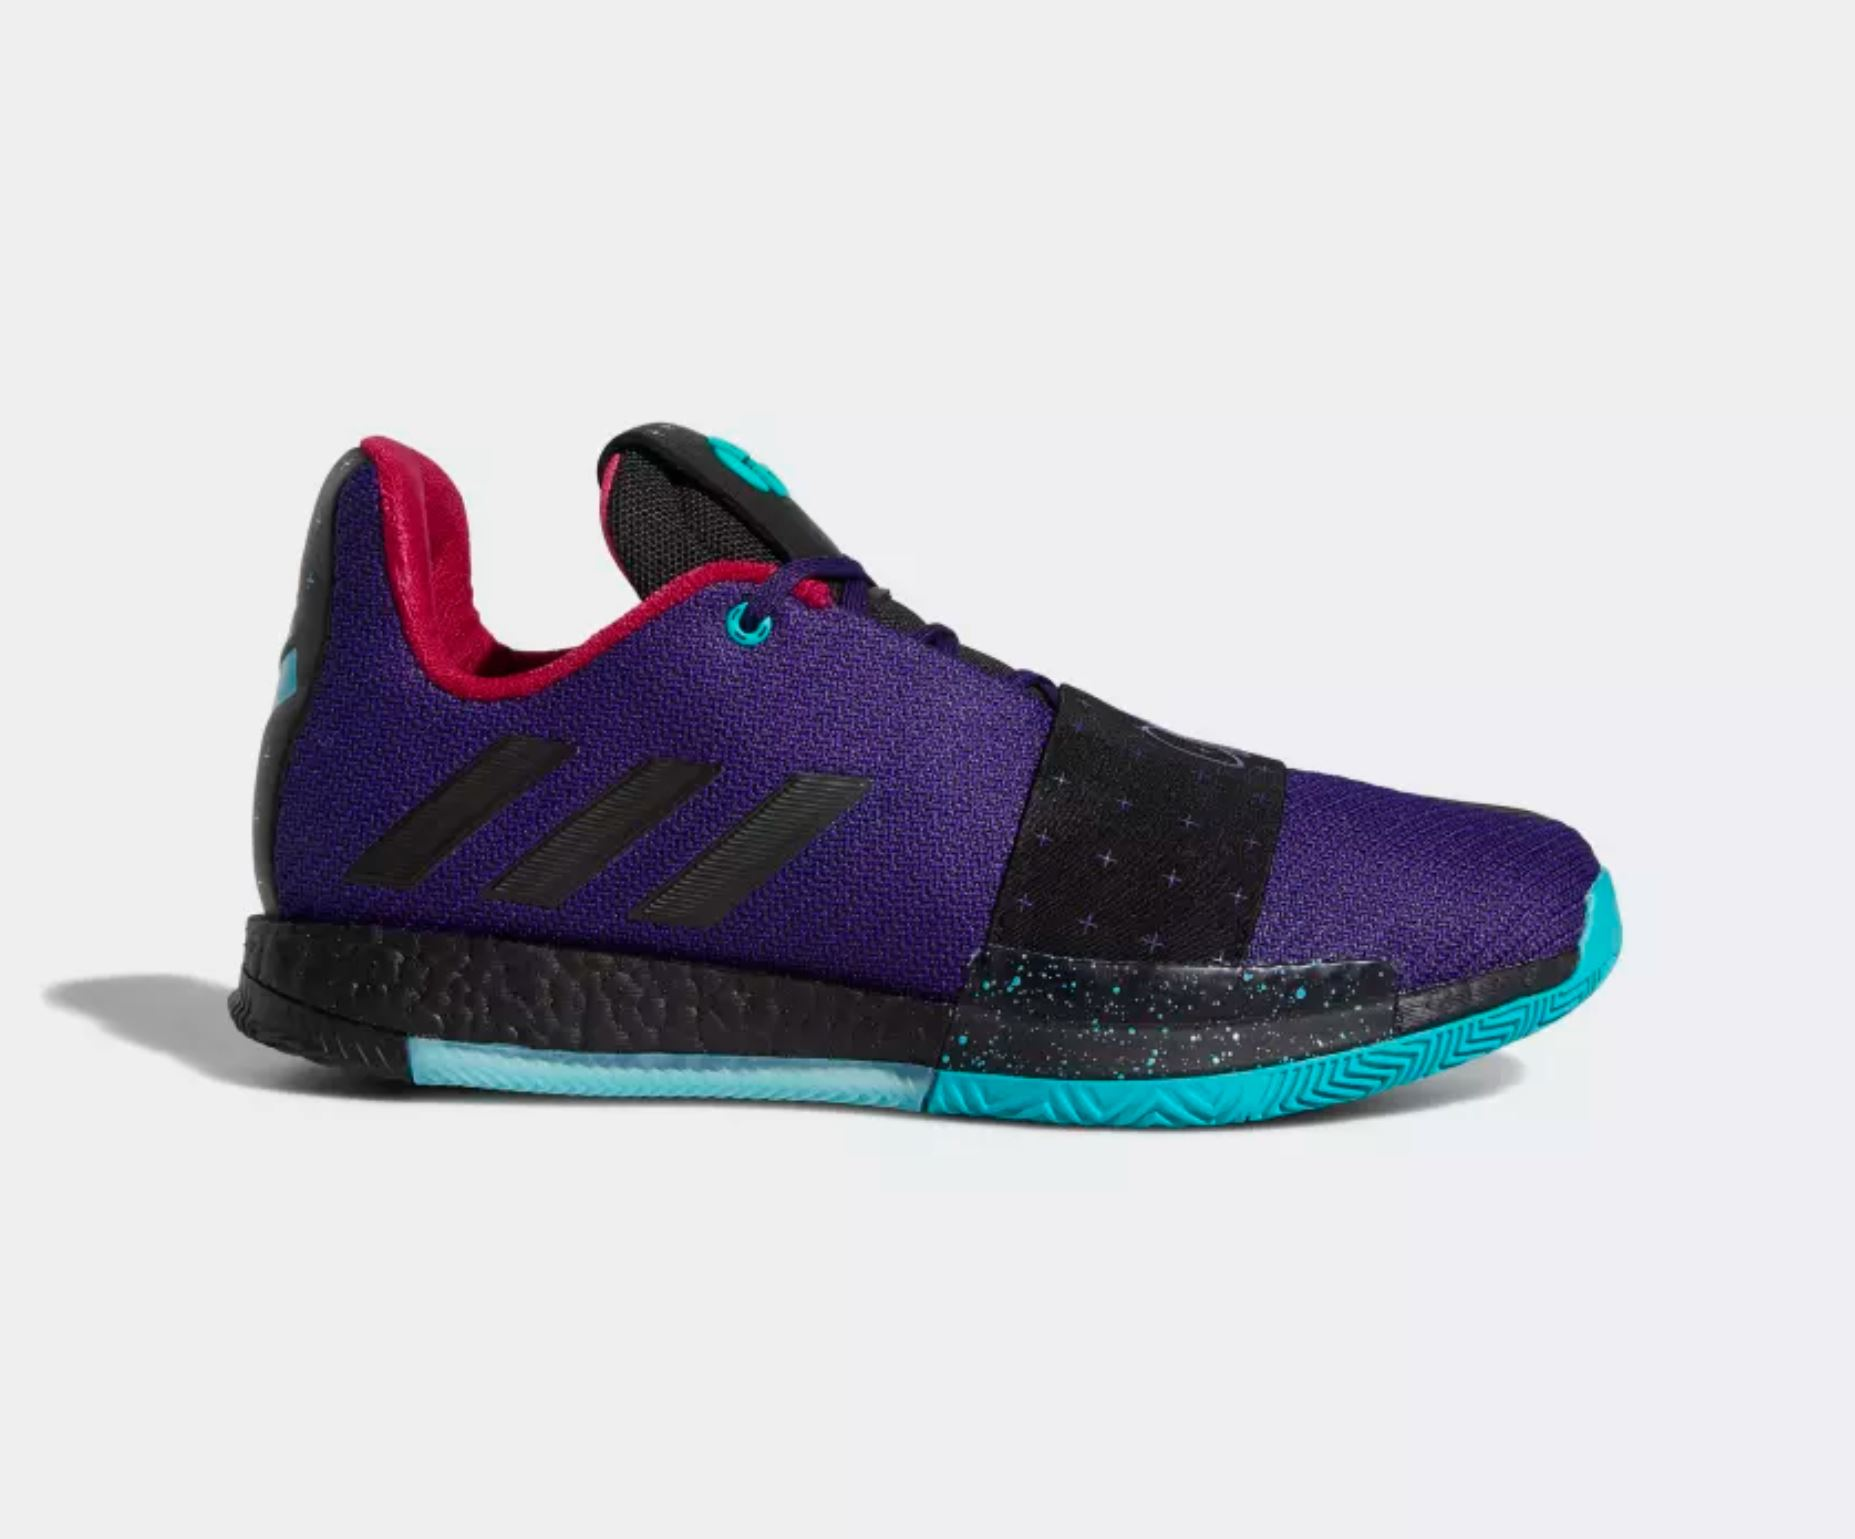 8f65ddb6379 James Harden s adidas Harden Vol 3 Has Dropped in  College Purple ...